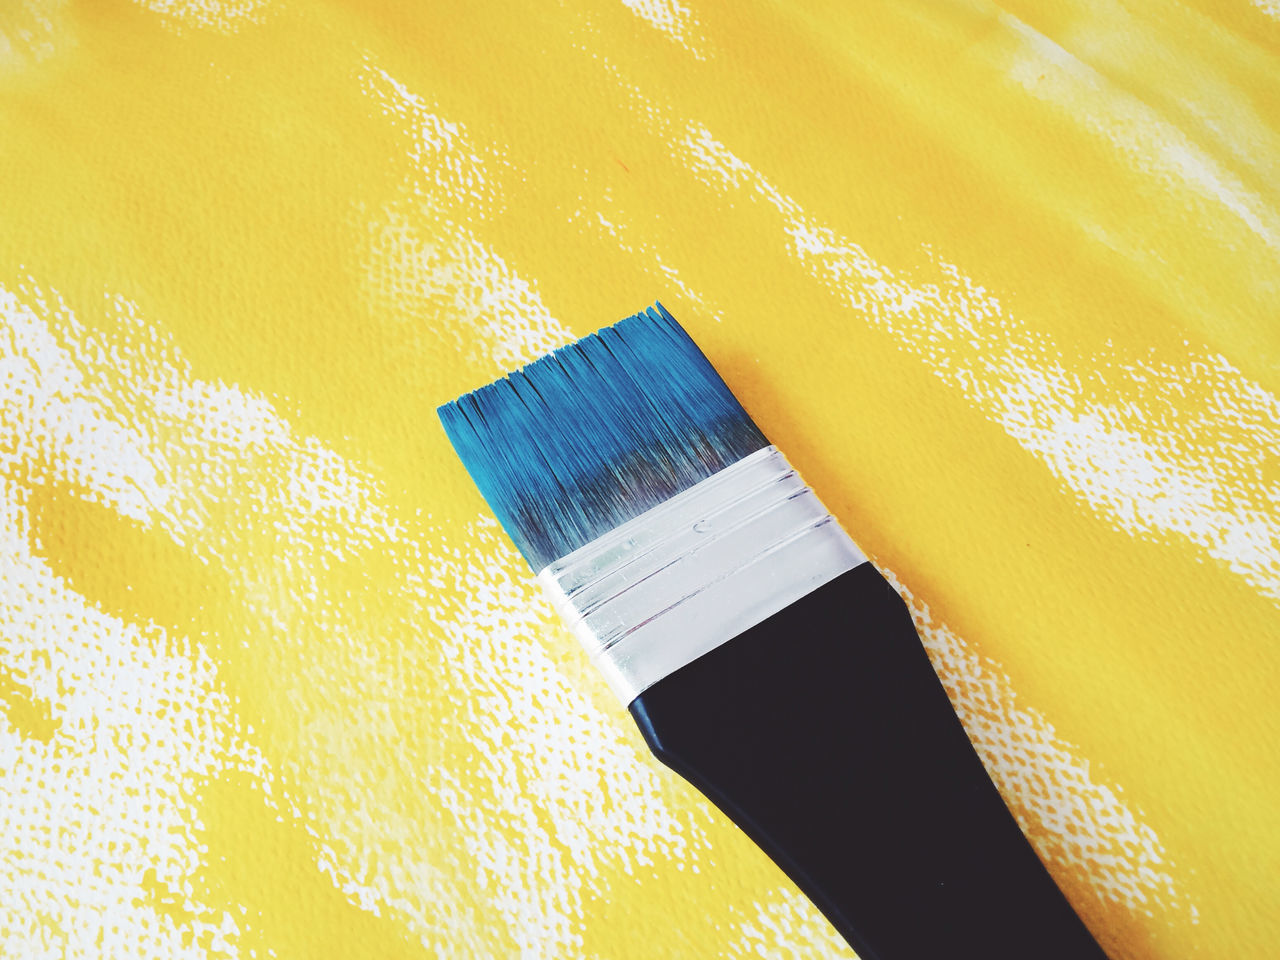 High angle view of paintbrush on yellow fabric